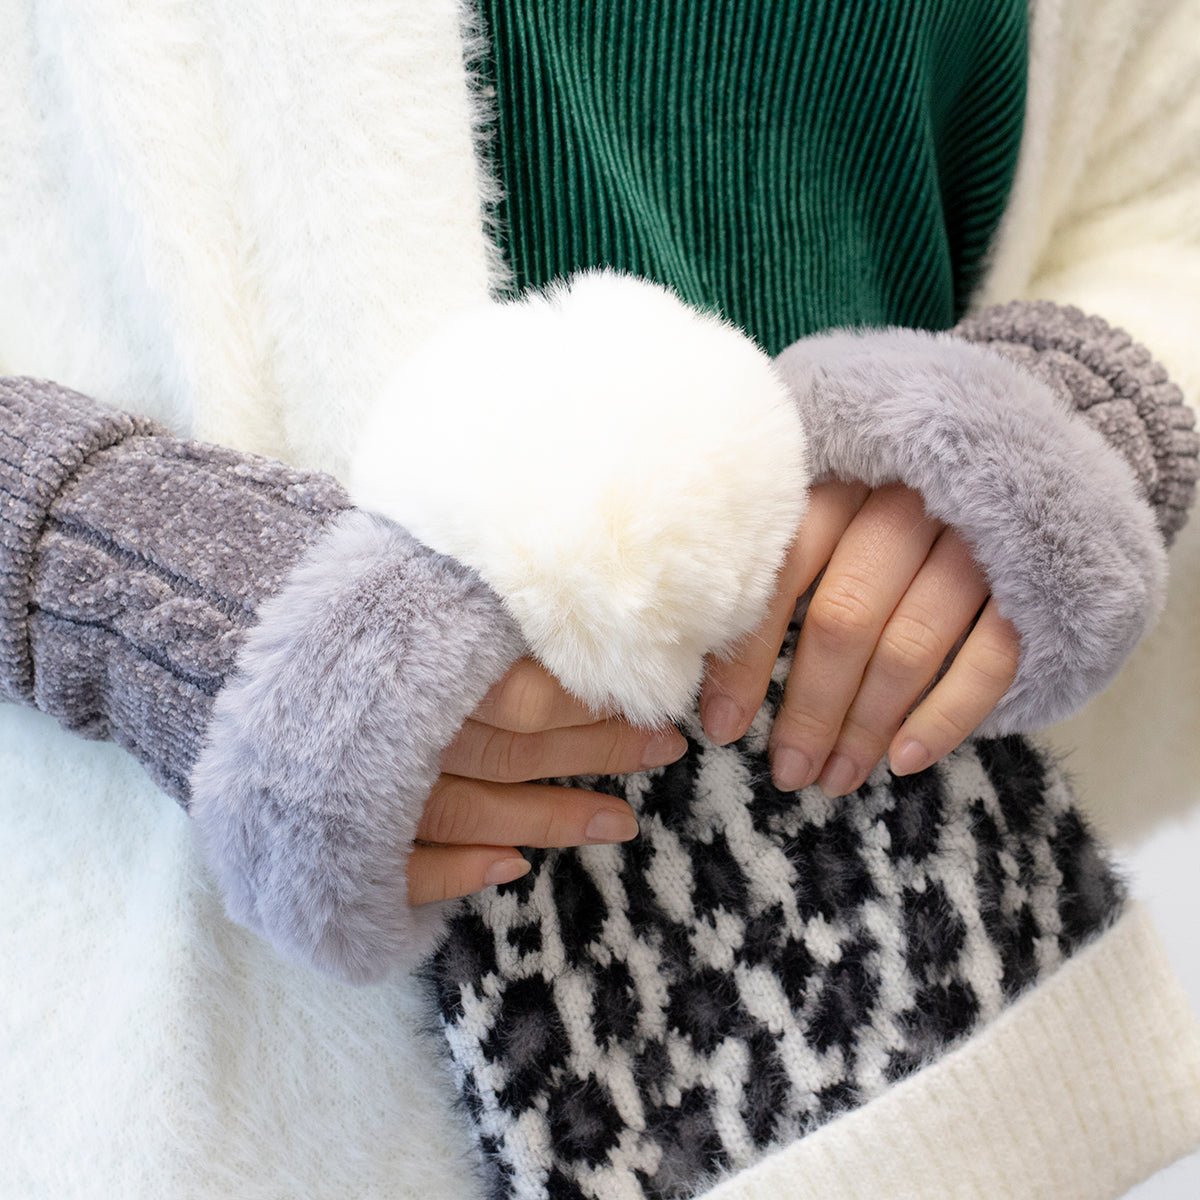 chenille-knit-fingerless-gloves